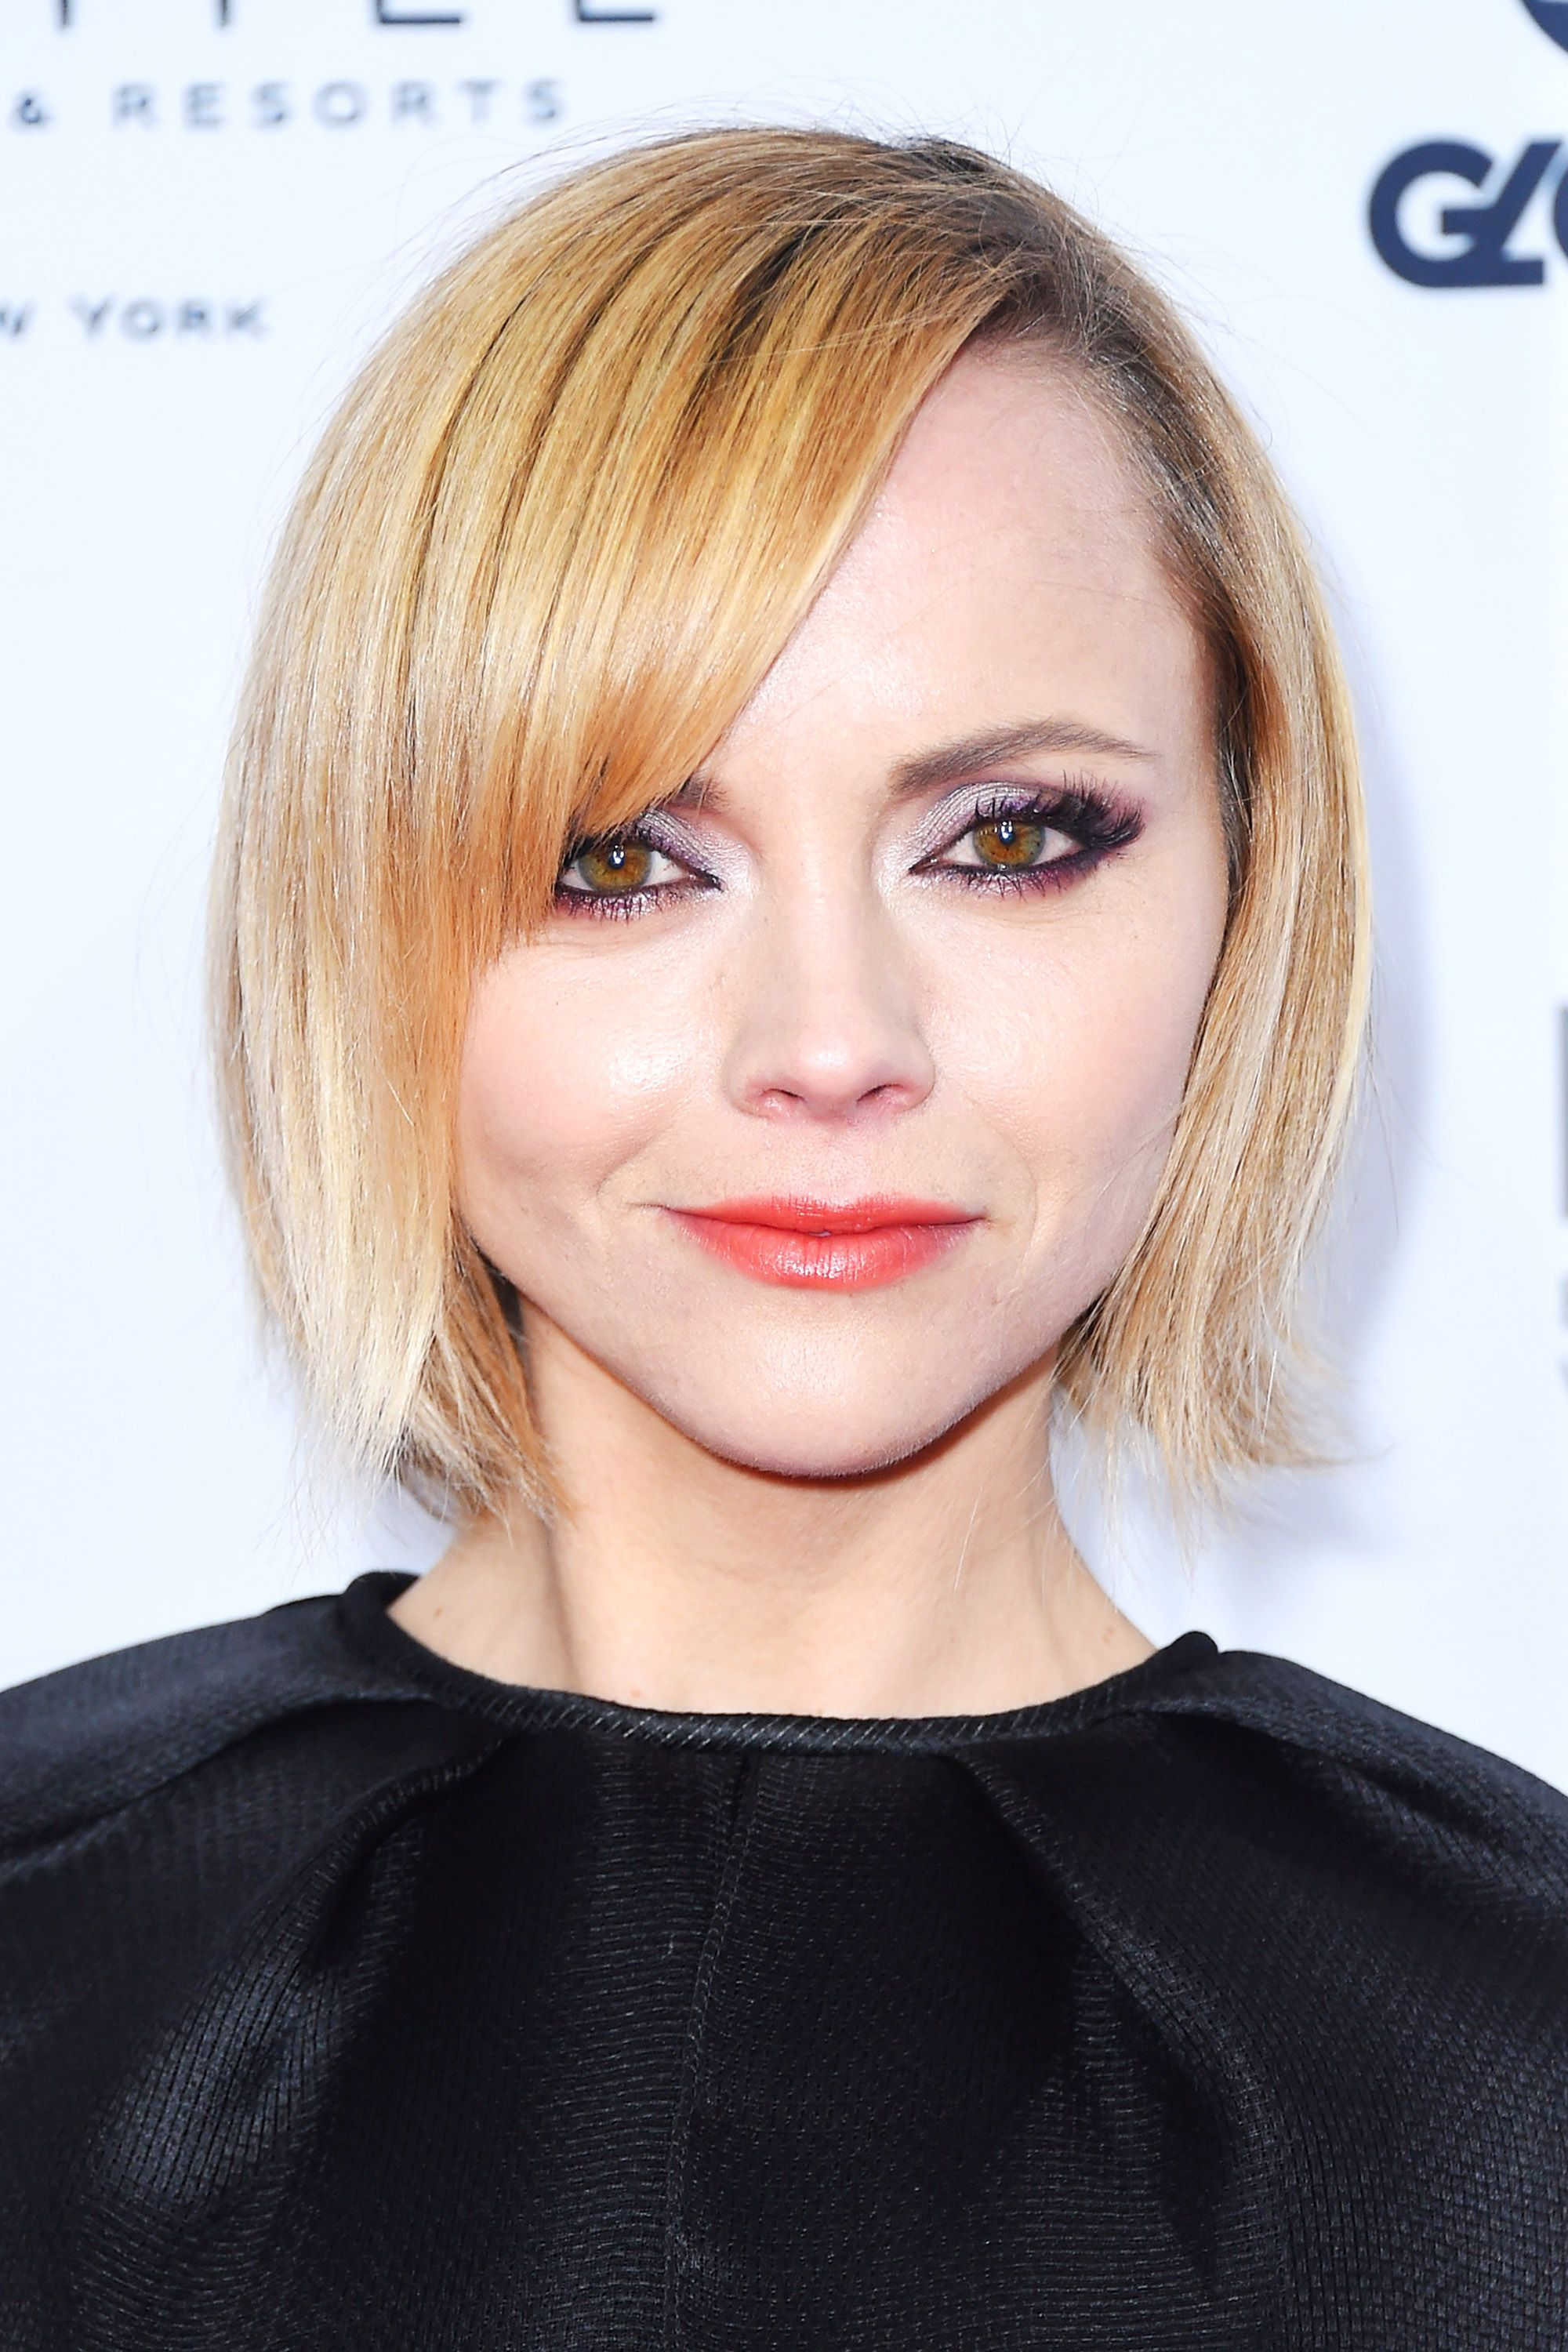 15 Cute Hairstyles For Round Faces 15 Short Medium And Long